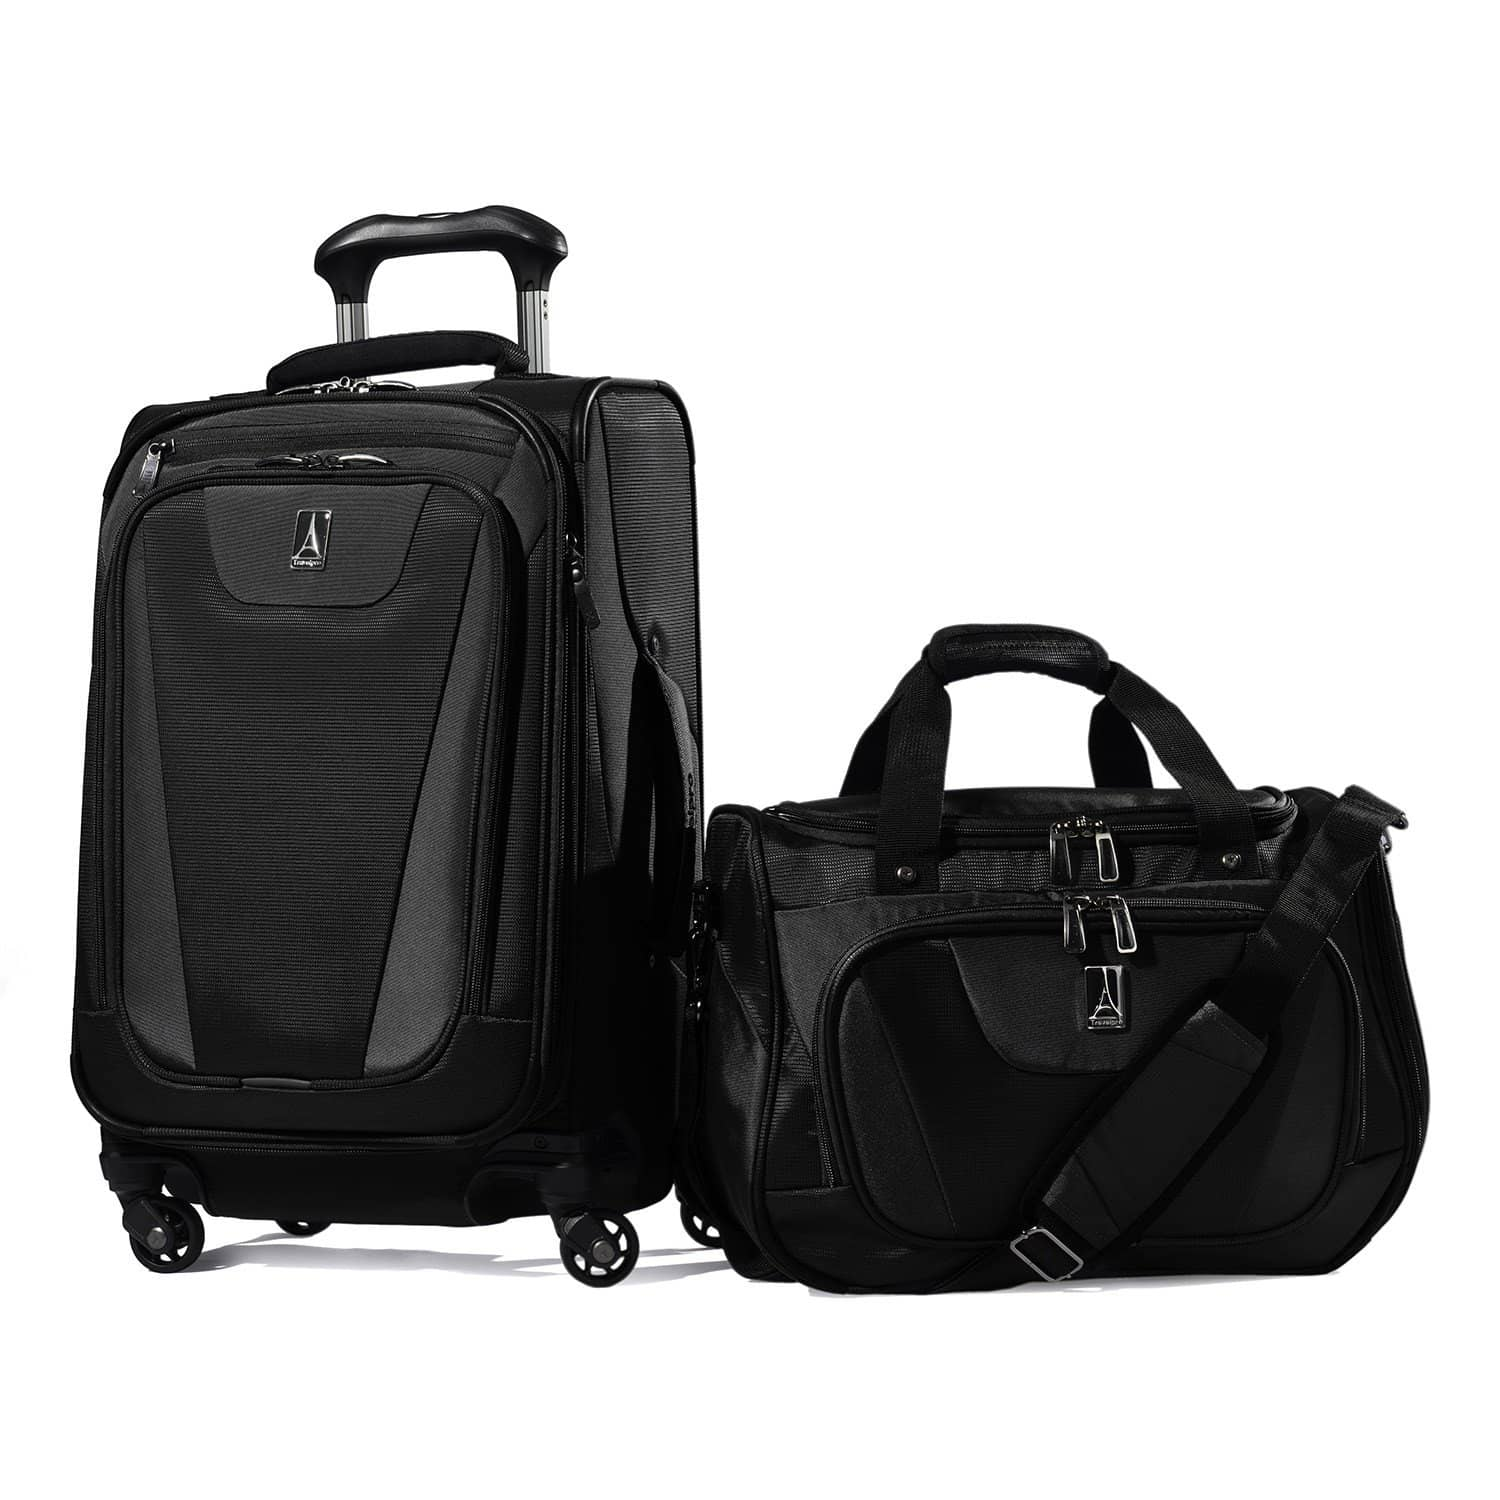 Travelpro Carry Me Away - Luggage Set BLACK